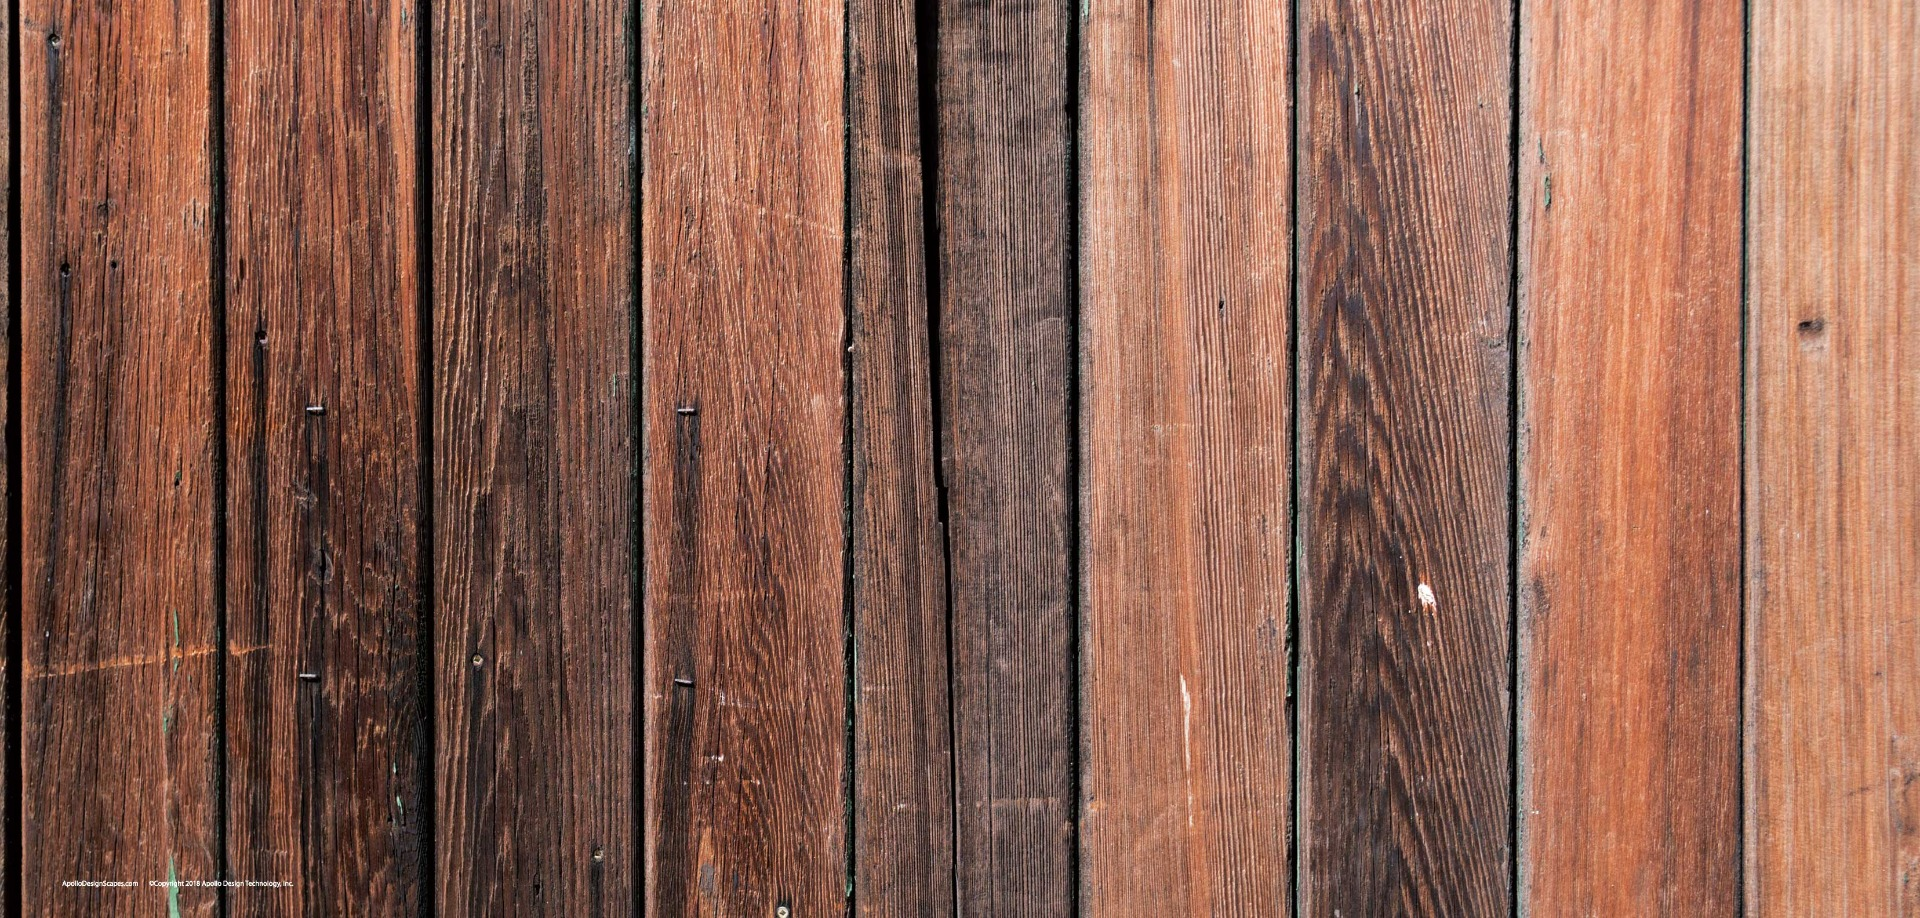 Panel of Redstained aged wood.